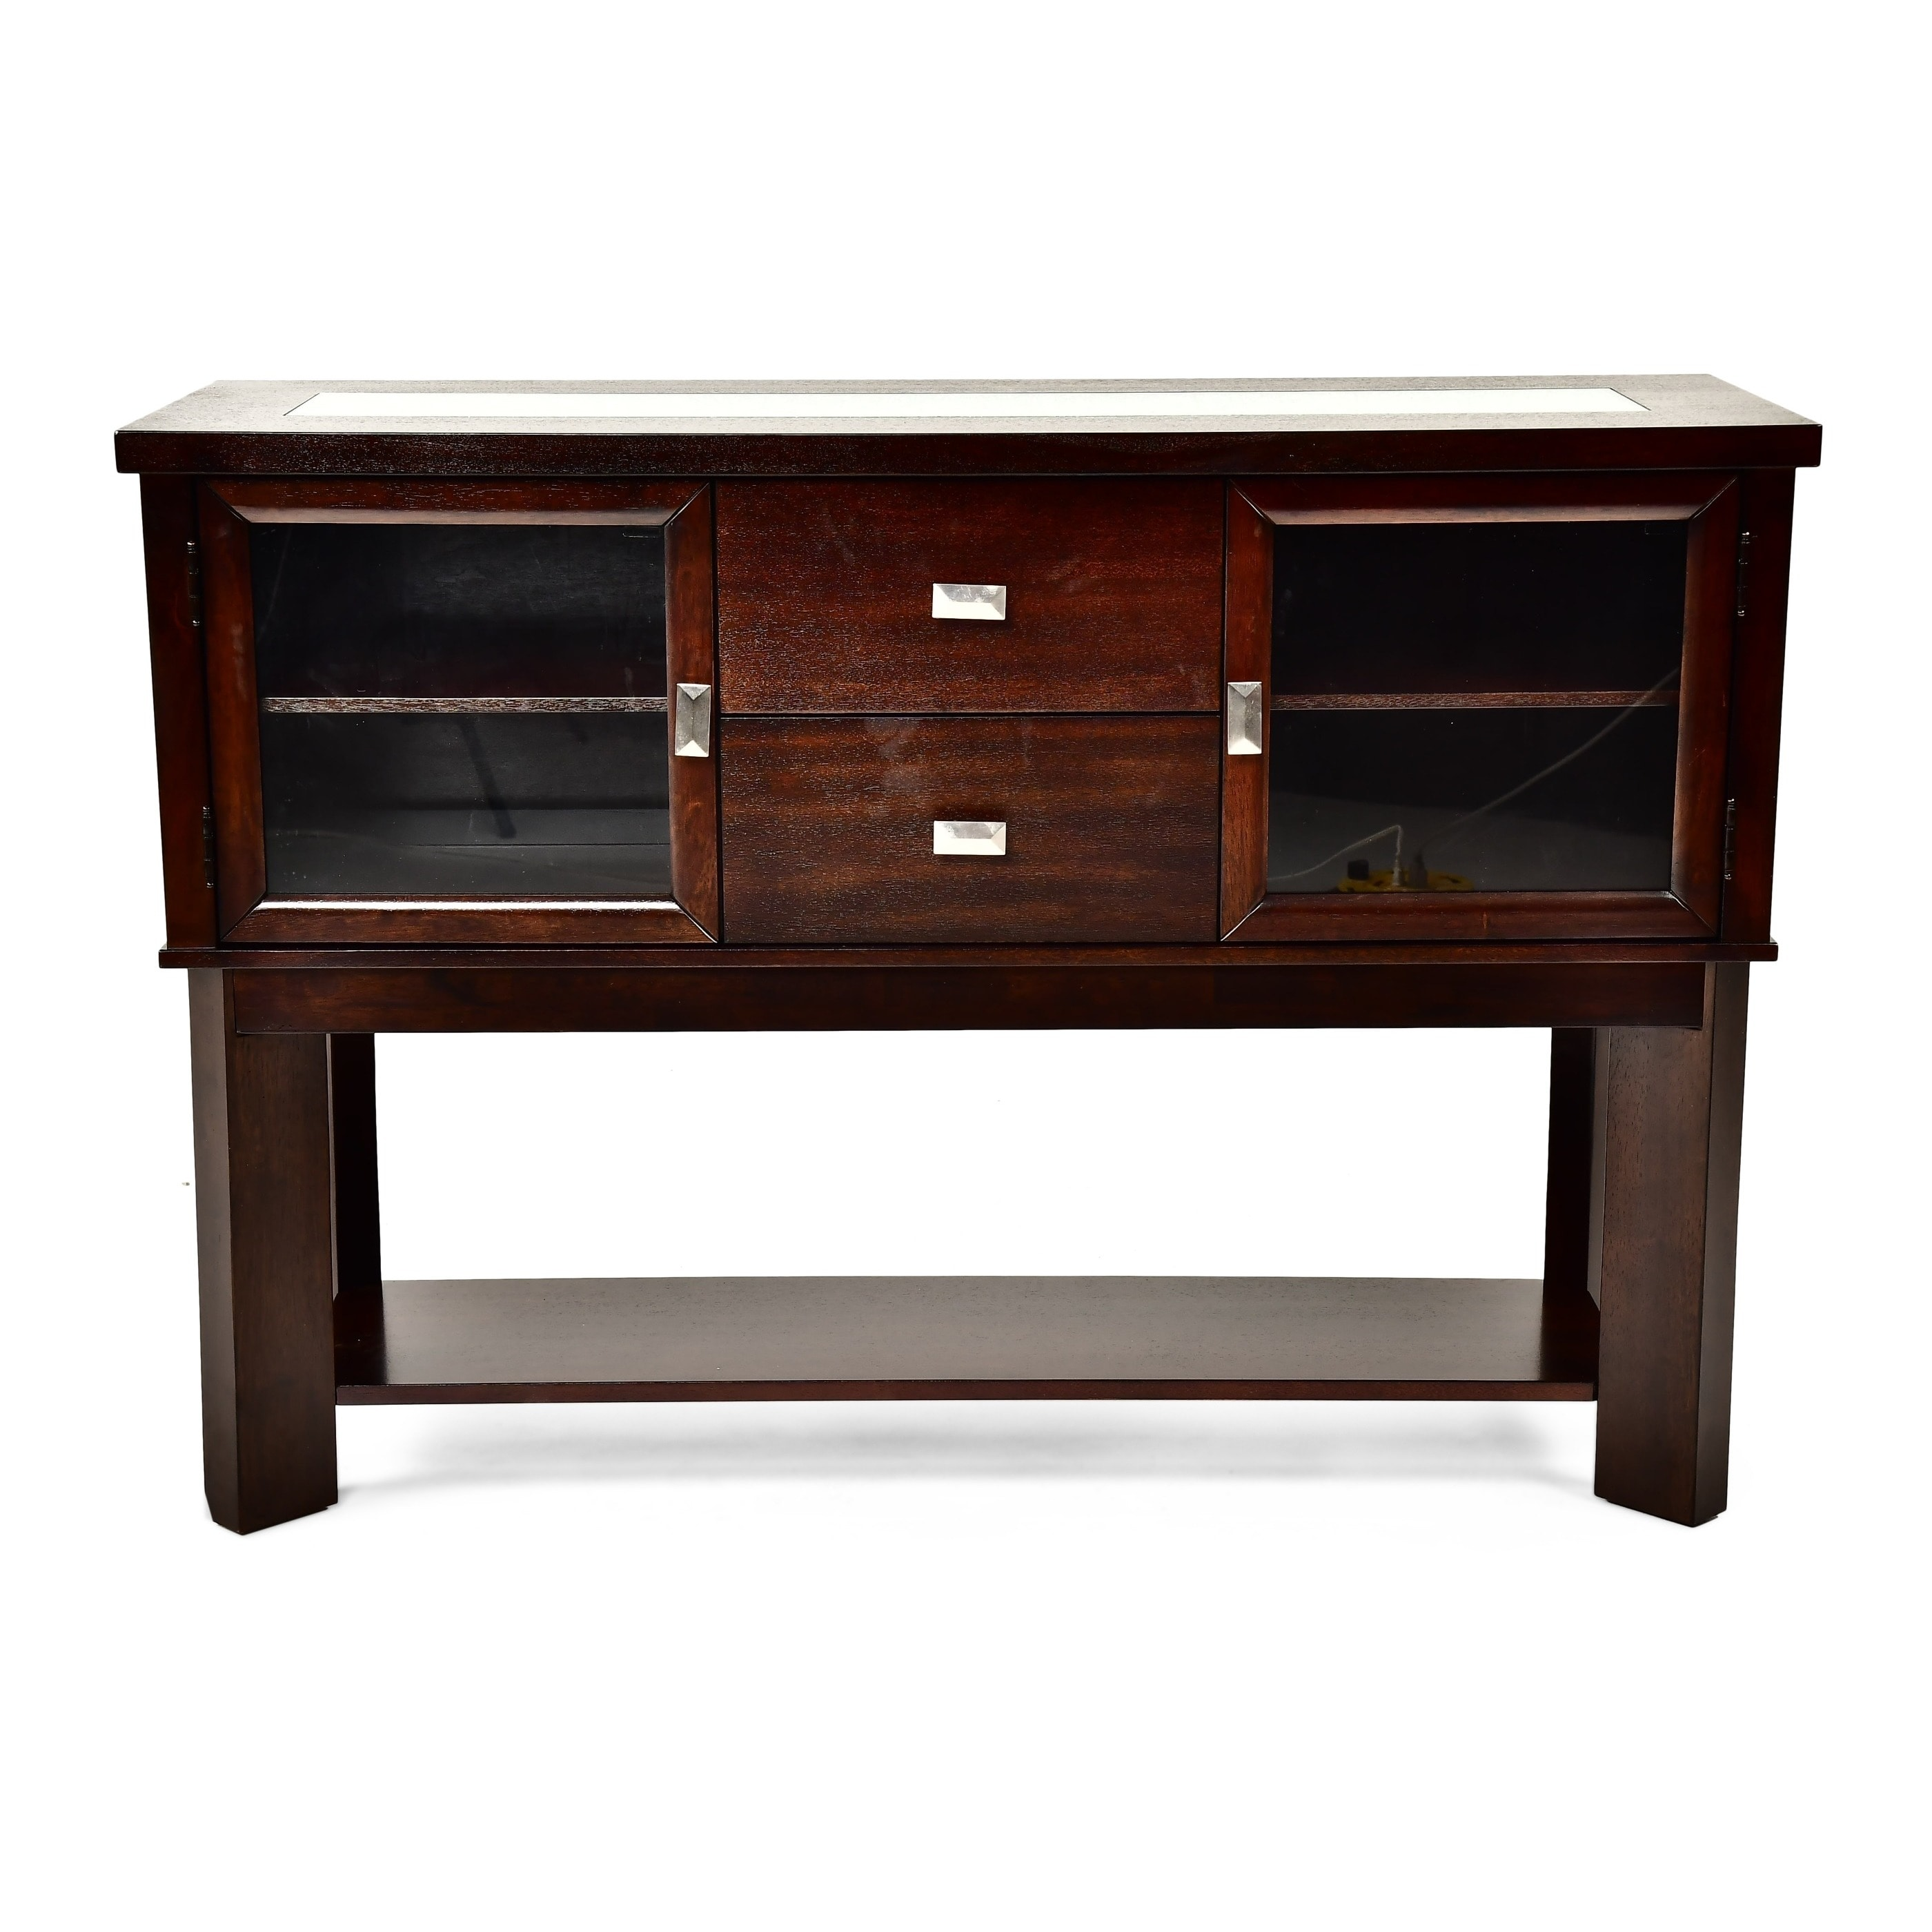 Shop greyson living domino espresso wood buffet table